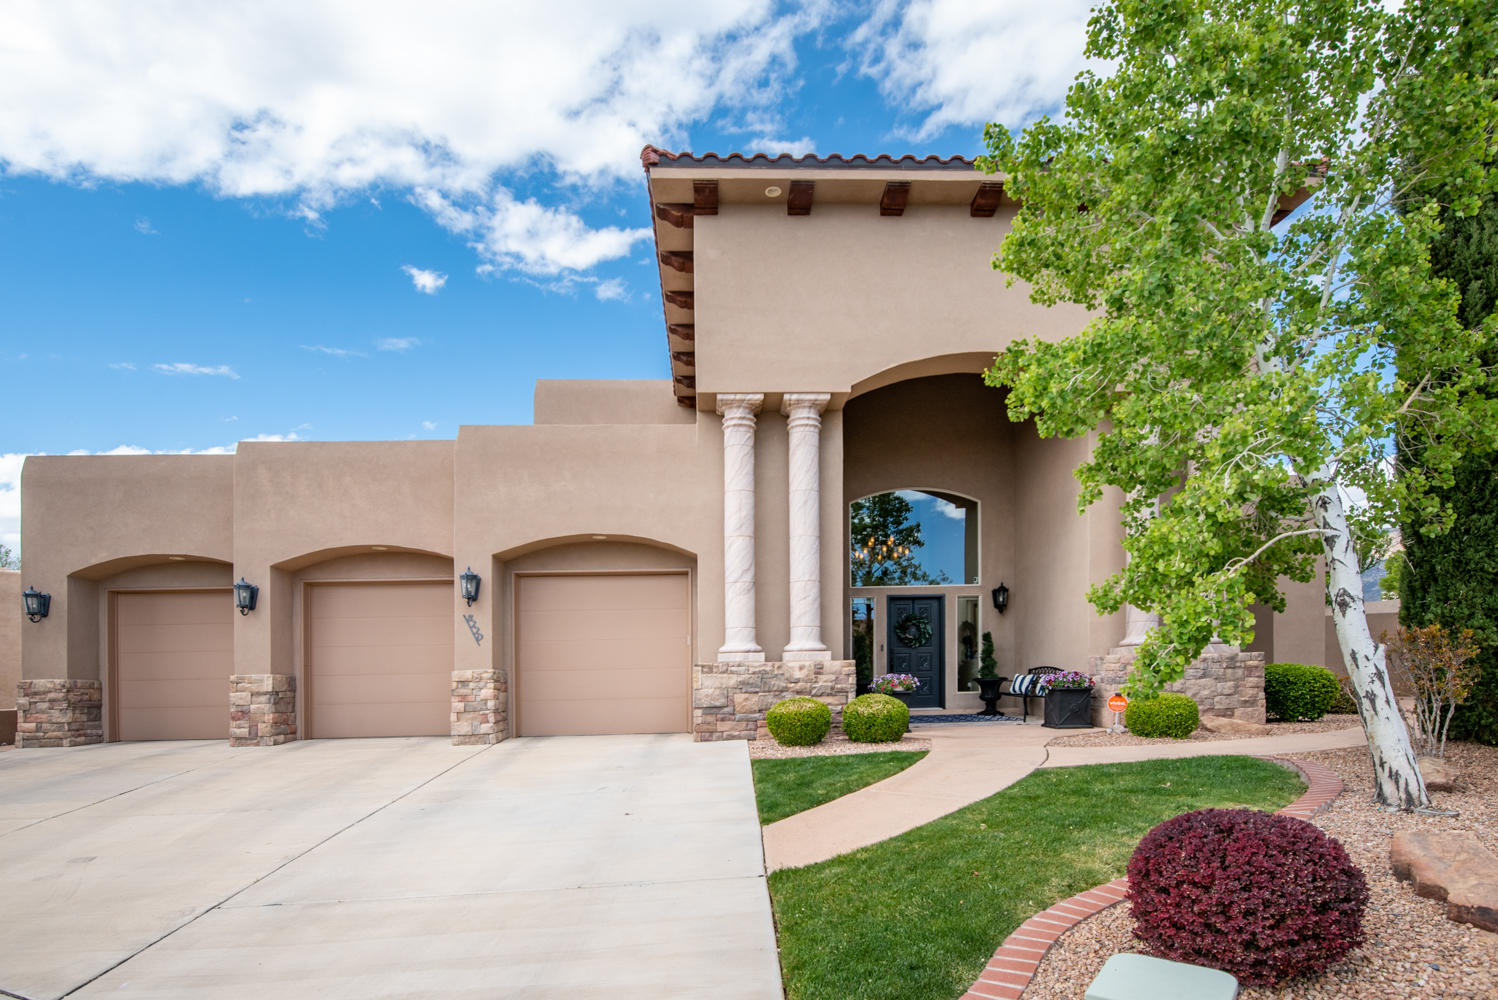 Stunning custom Panorama home, full of natural light! End of cul-de-sac in Albuquerque's best schooldistrict. Built in 2006, updated in 2011. Phenomenal open floor plan. Kitchen, breakfast nook, andlarge island all connect to great room and formal dining. Media room, home office, and formal livingroom complete the main floor. Spacious master and master bath, large second bed with en suite bath,Jack-and-Jill bed/bath combo, laundry, and small 5 th bedroom on second floor. White designer kitchenin 2011, custom light fixtures throughout, hardwood and tile flooring. Beautifully landscaped yard withlarge gated pool, auto cover and in ground hot tub, 10x17 size trampoline. Breath taking view of Sandia Mountains!  Pool size 16' x 33'